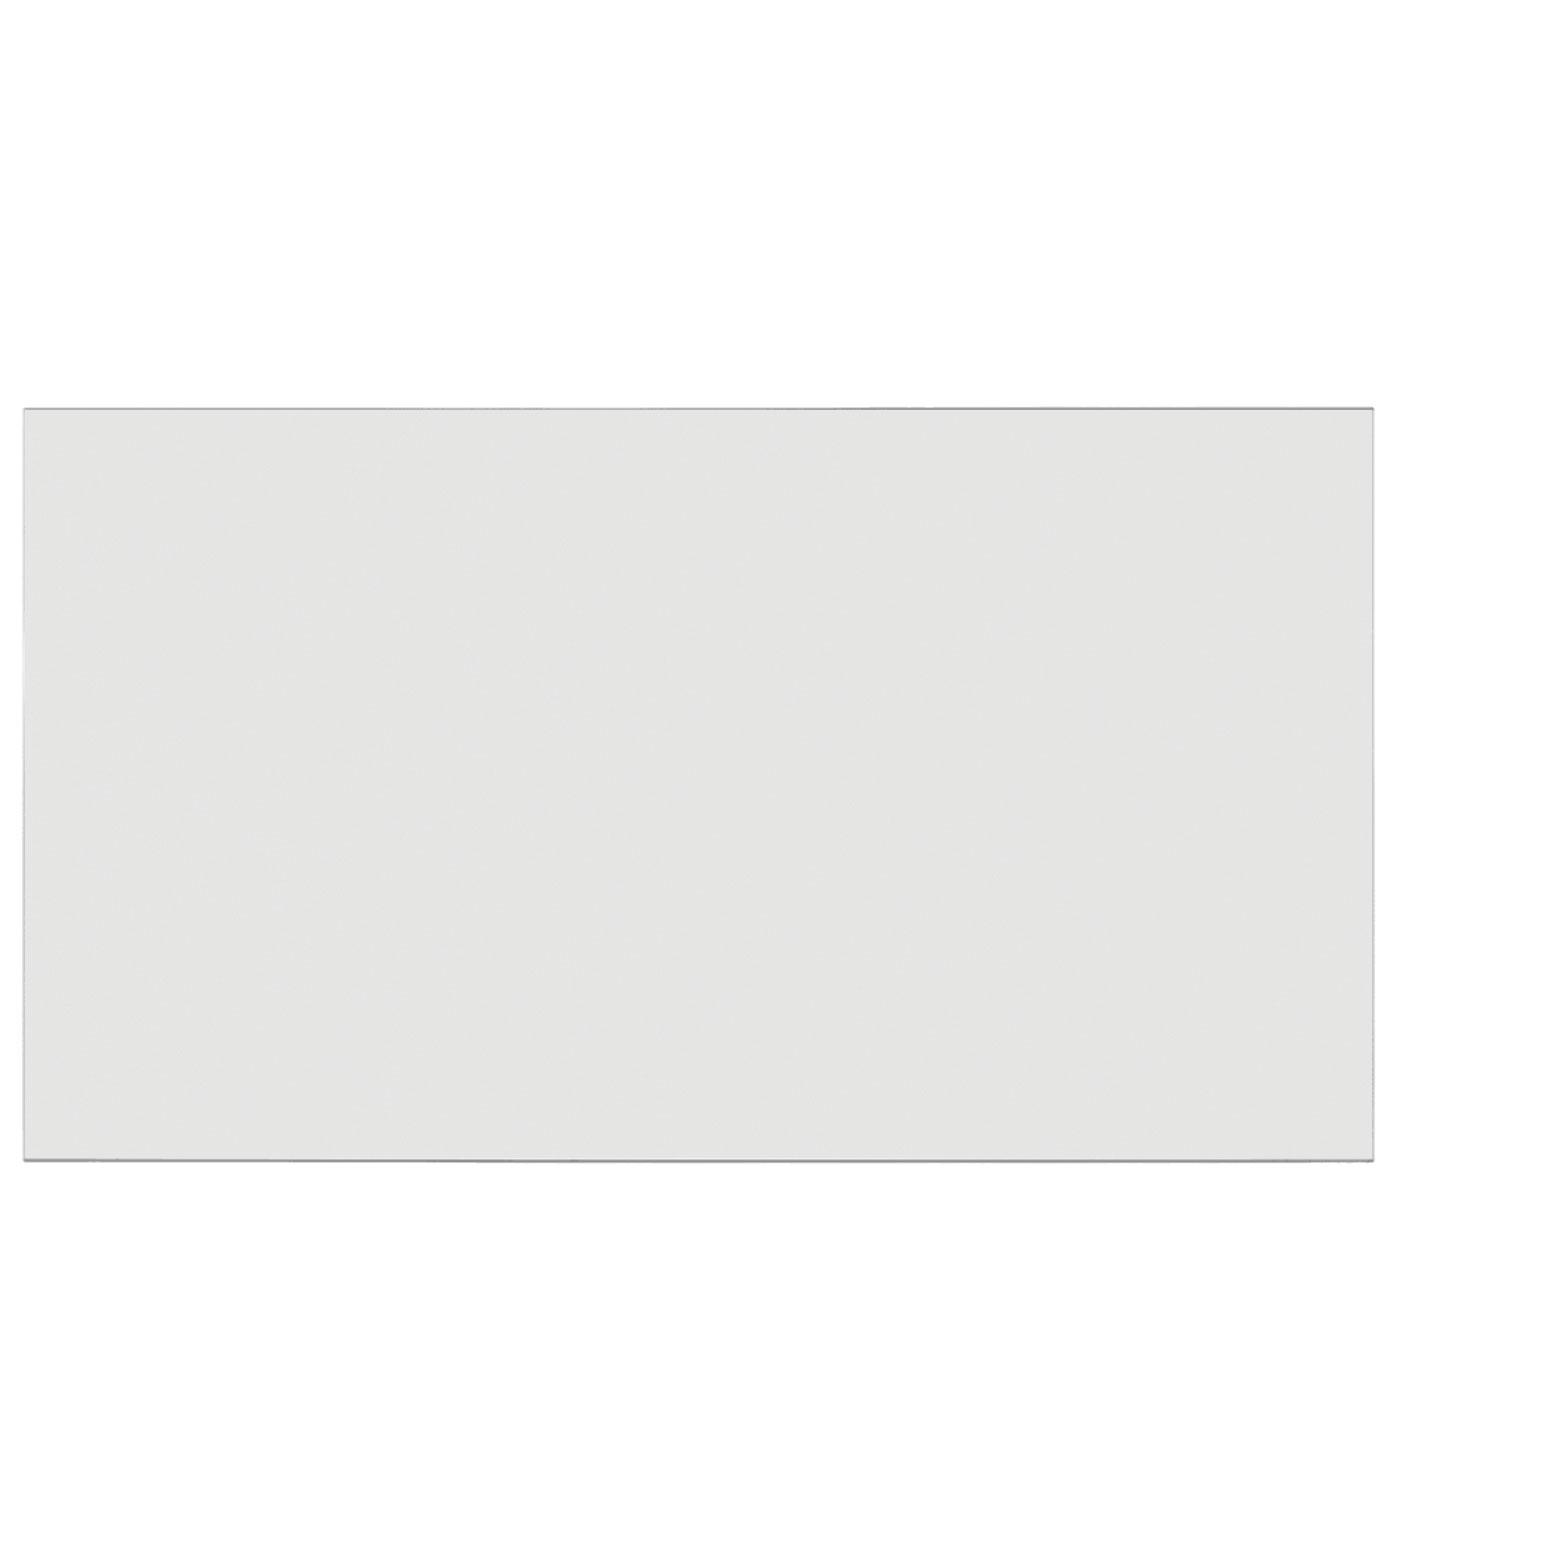 Frosted Acrylic Screen with Square Edges – 66″W x 24″H